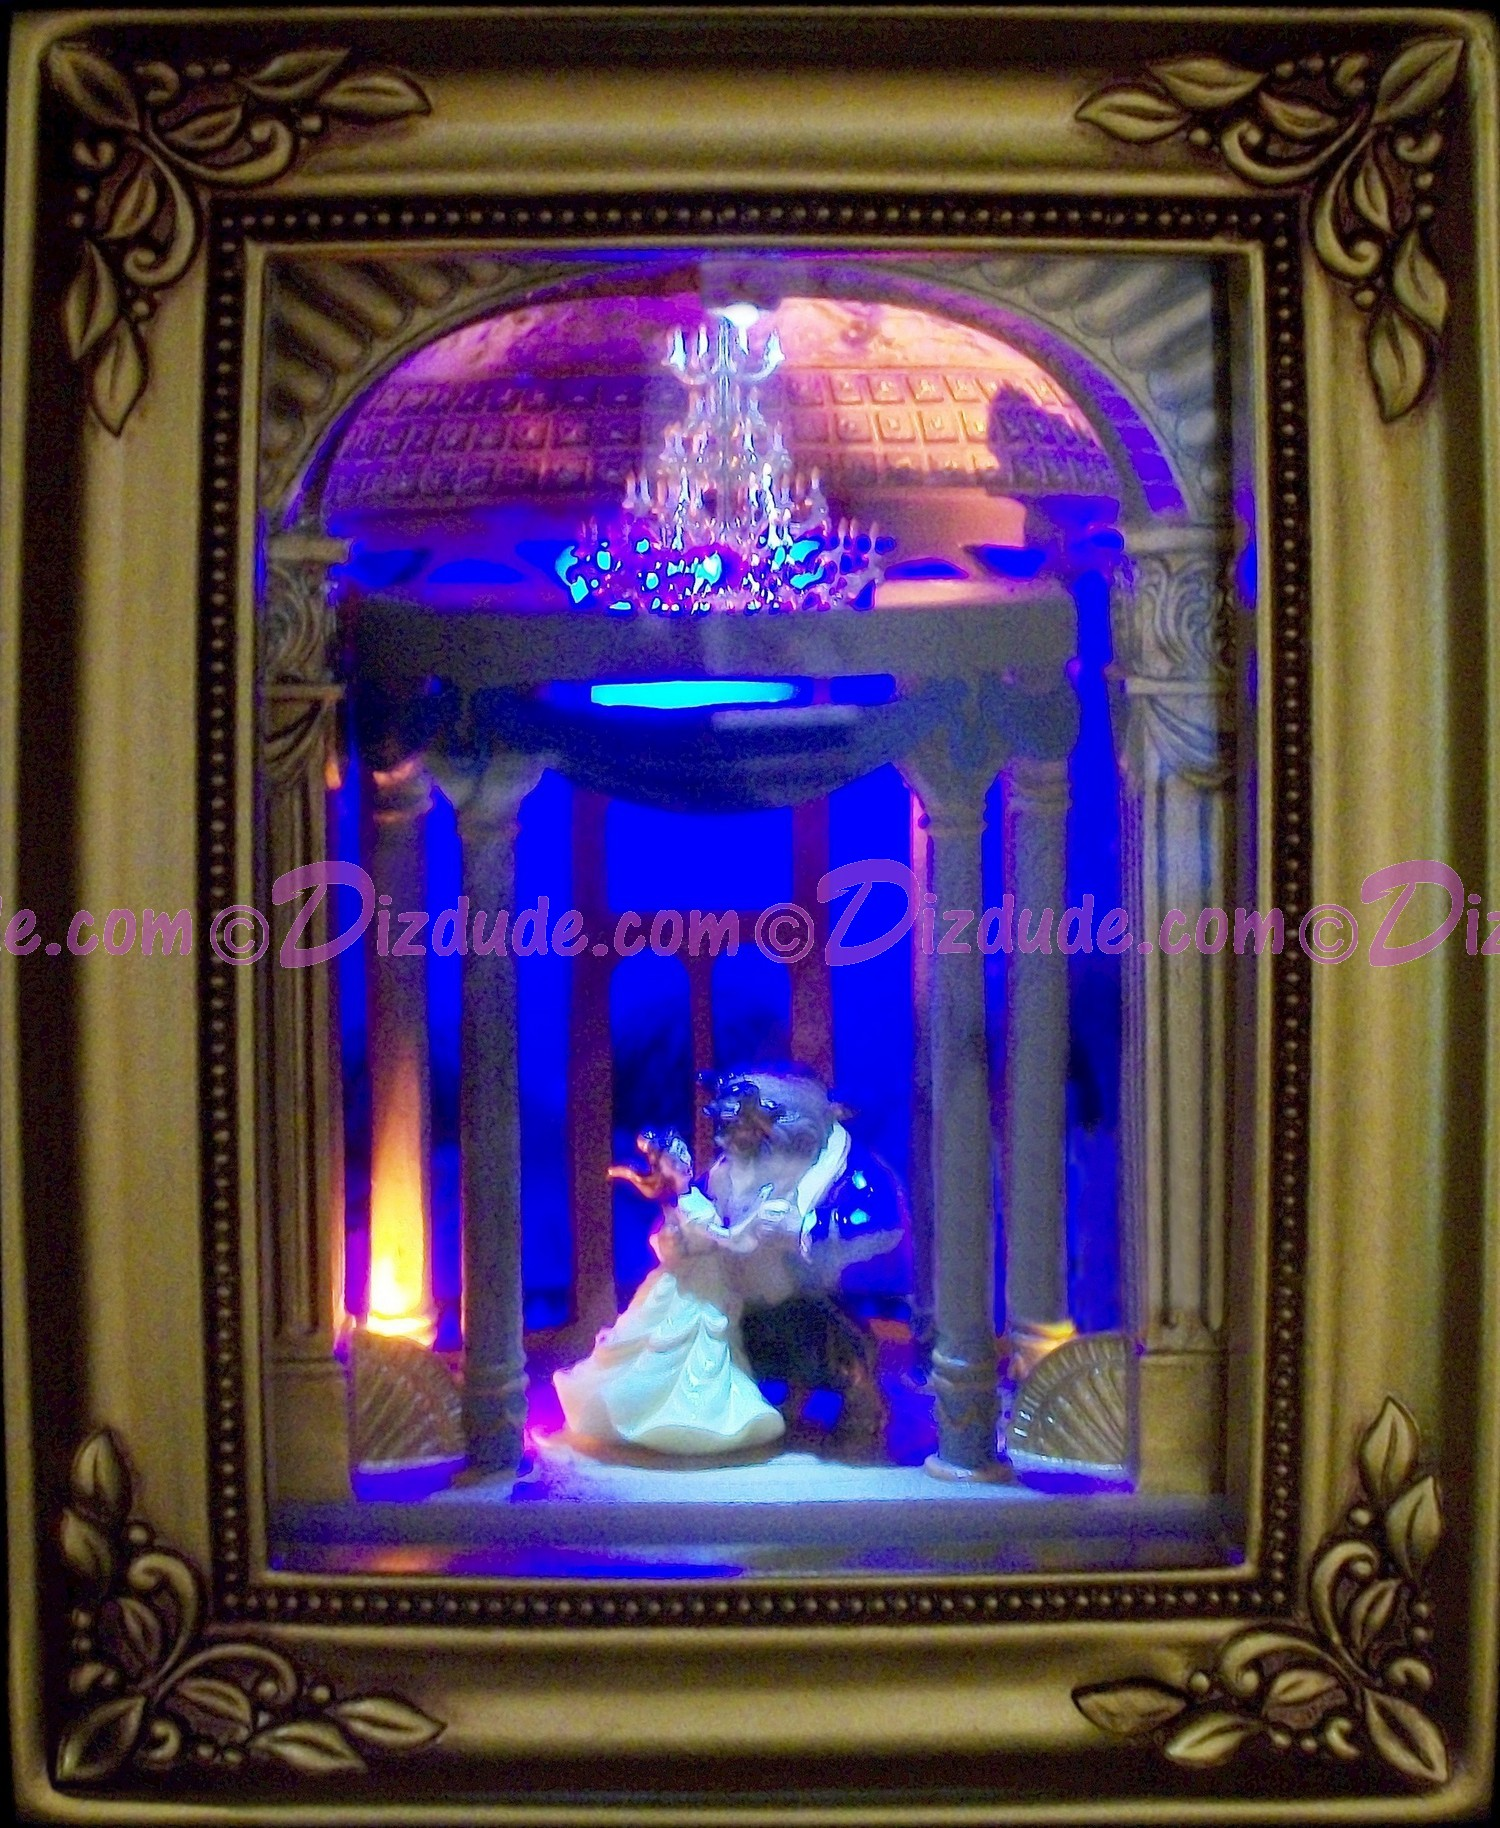 Beauty And The Beast in One Wonderous Waltz © Dizdude.com